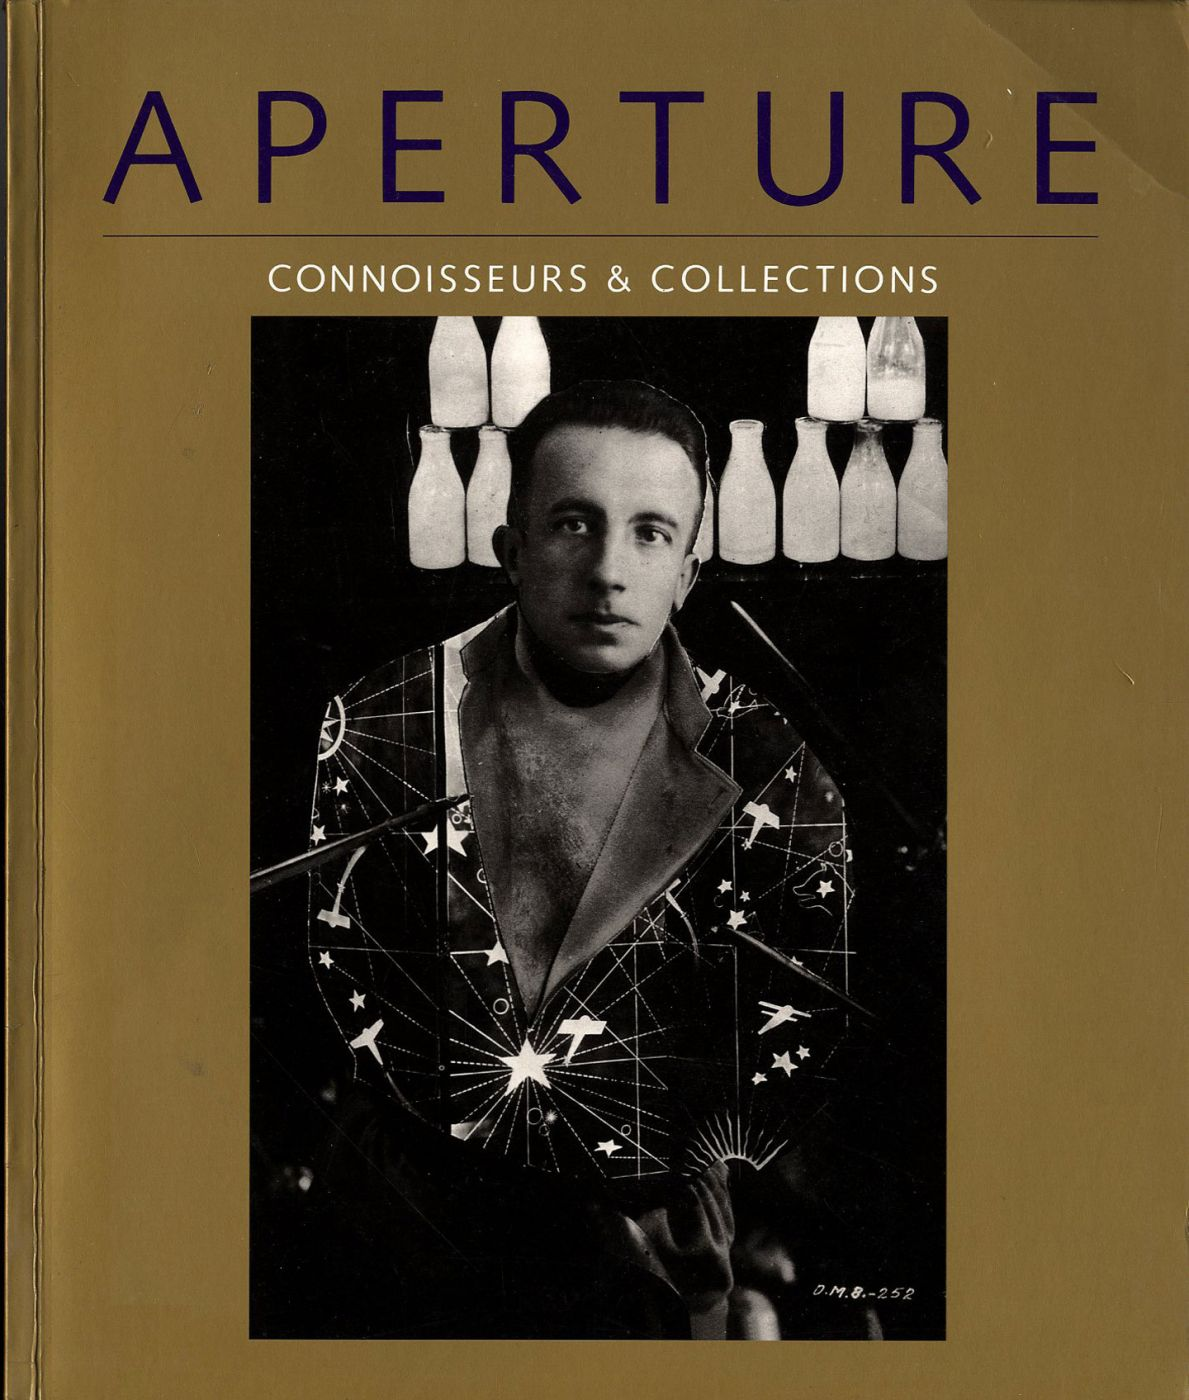 Aperture 124 - Connoisseurs & Collections